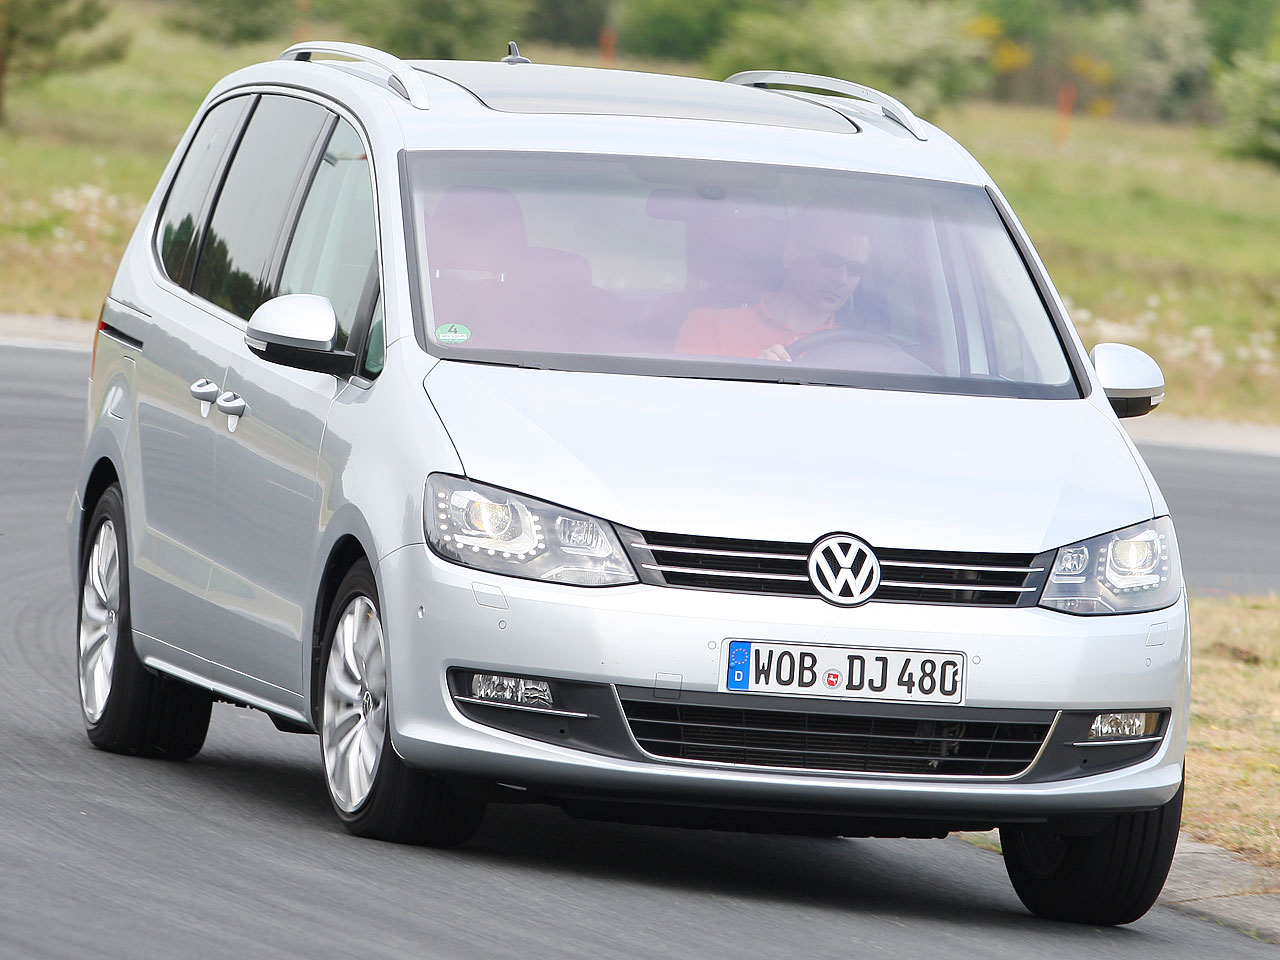 2021 VW Sharan Price, Design and Review